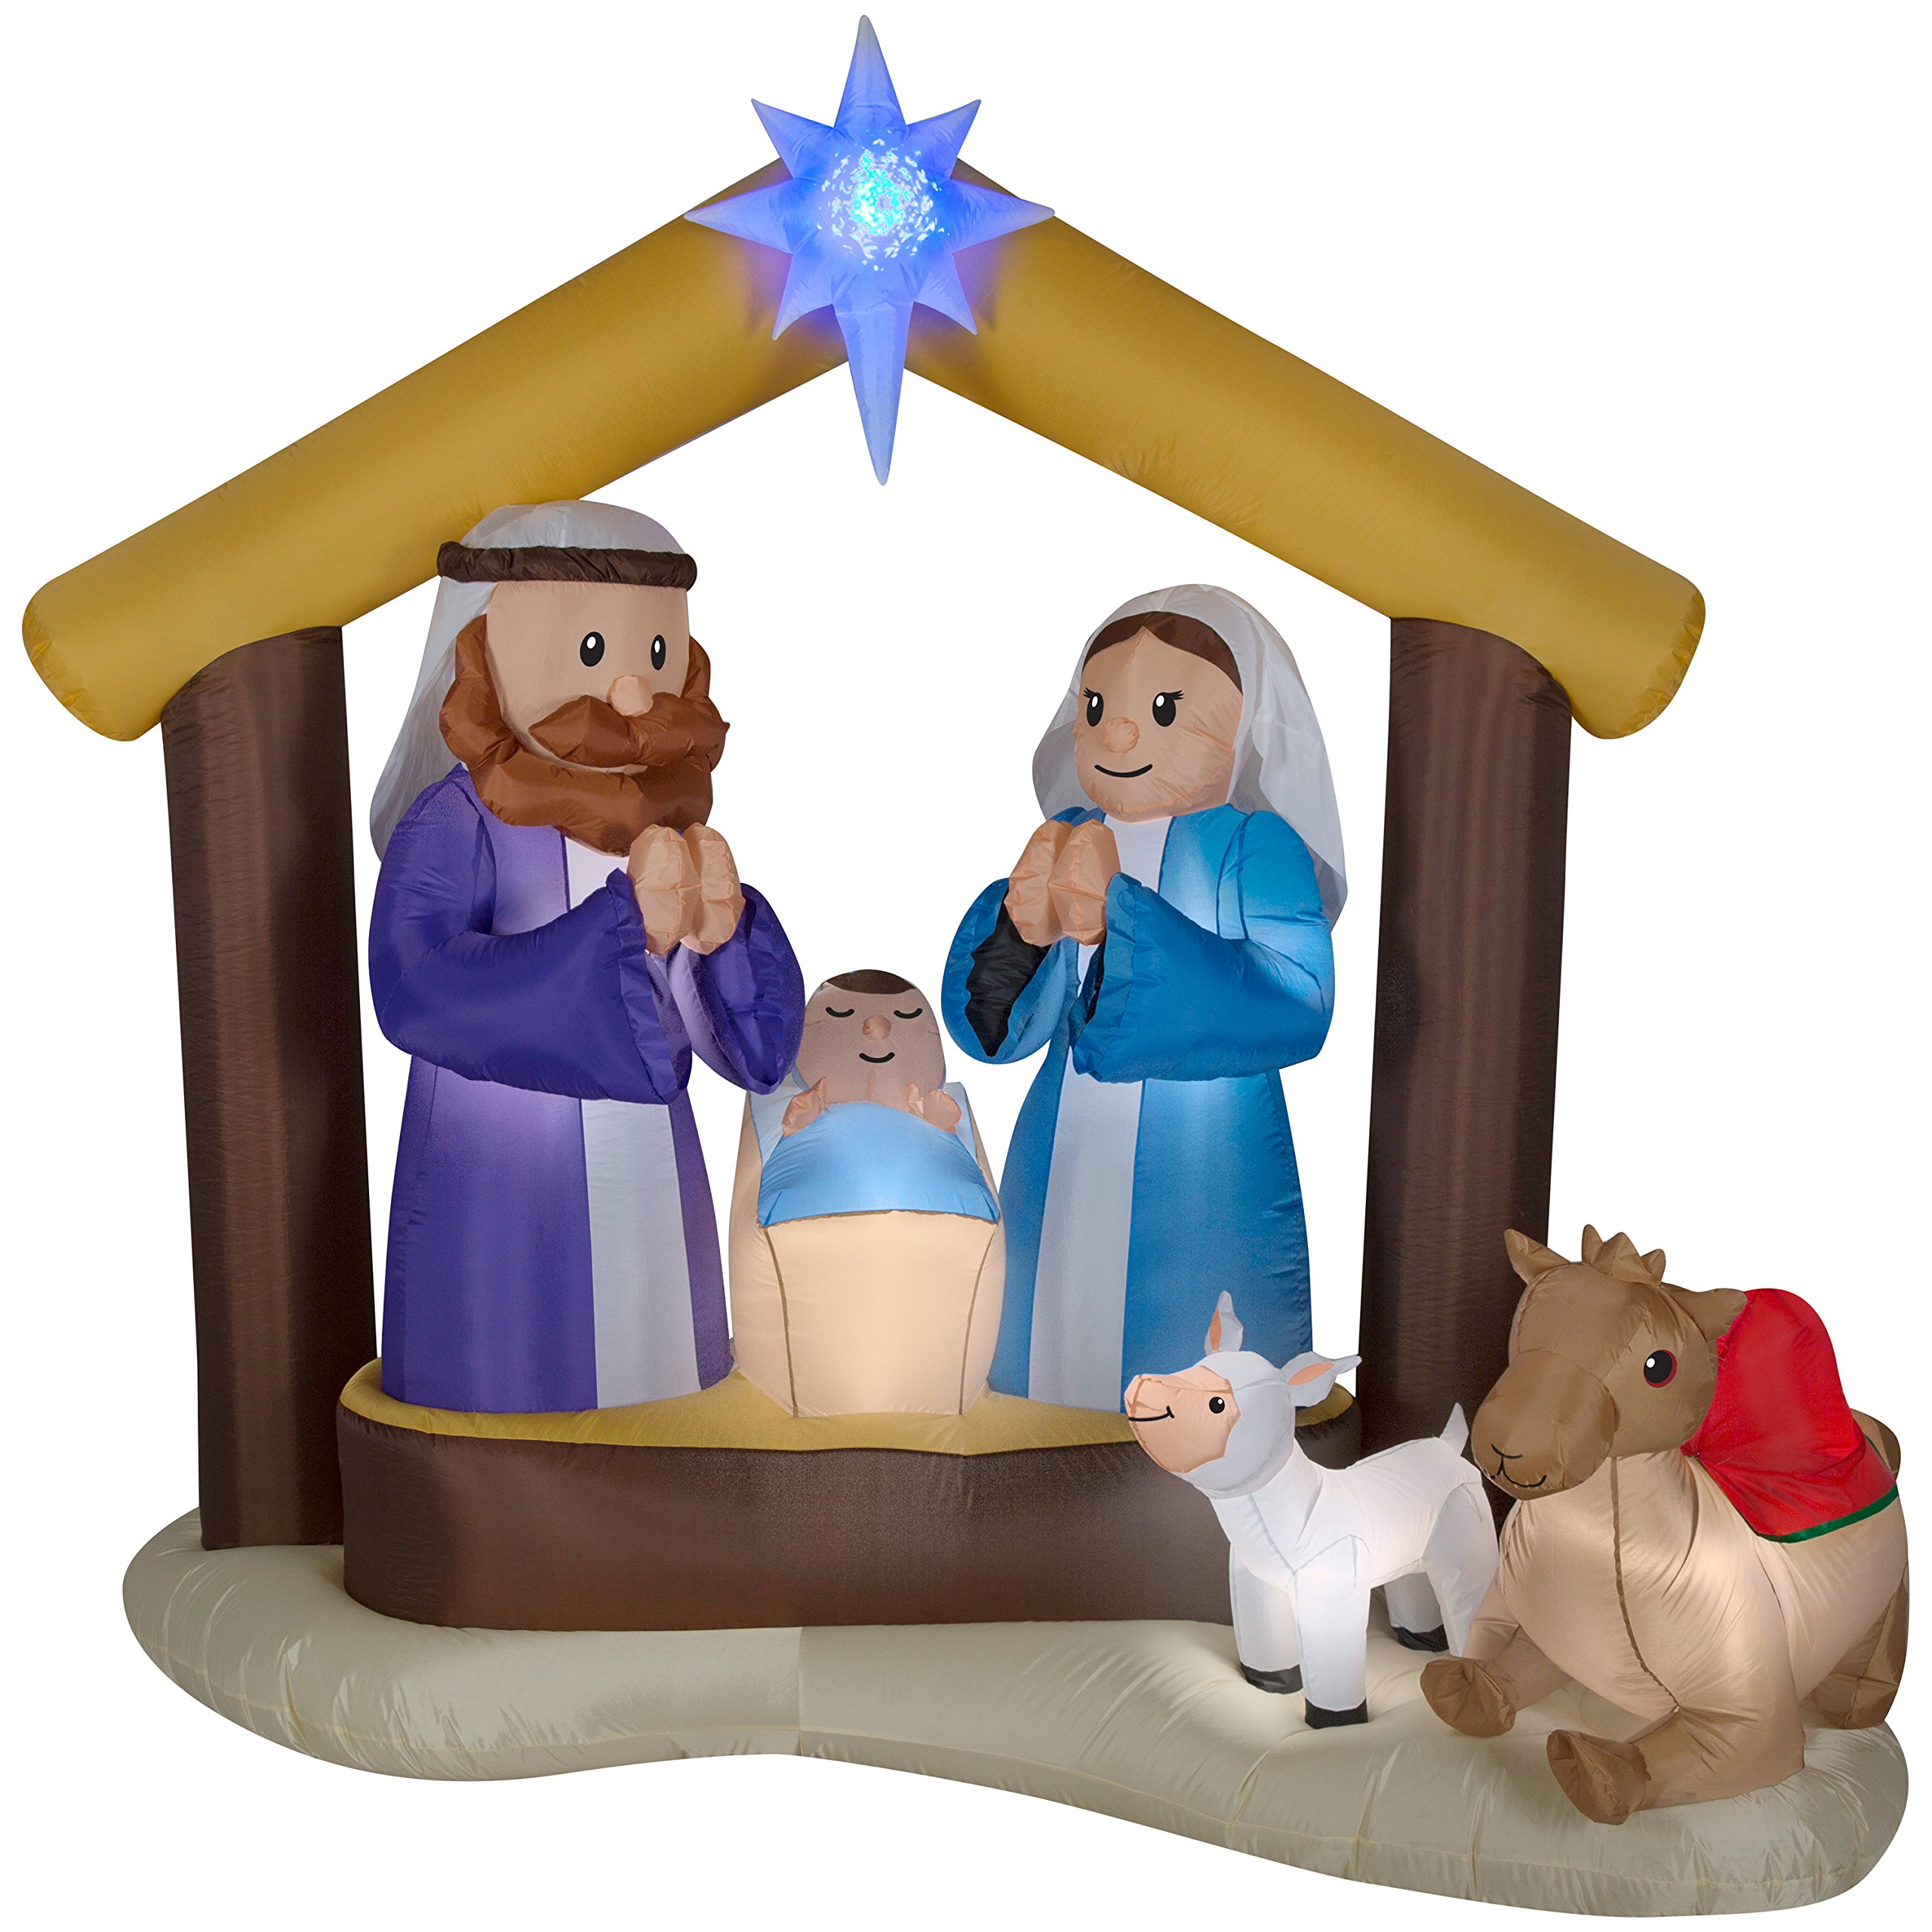 LightShow Airblown Inflatable Kaleidoscope Nativity Scene Outdoor Decoration by Gemmy